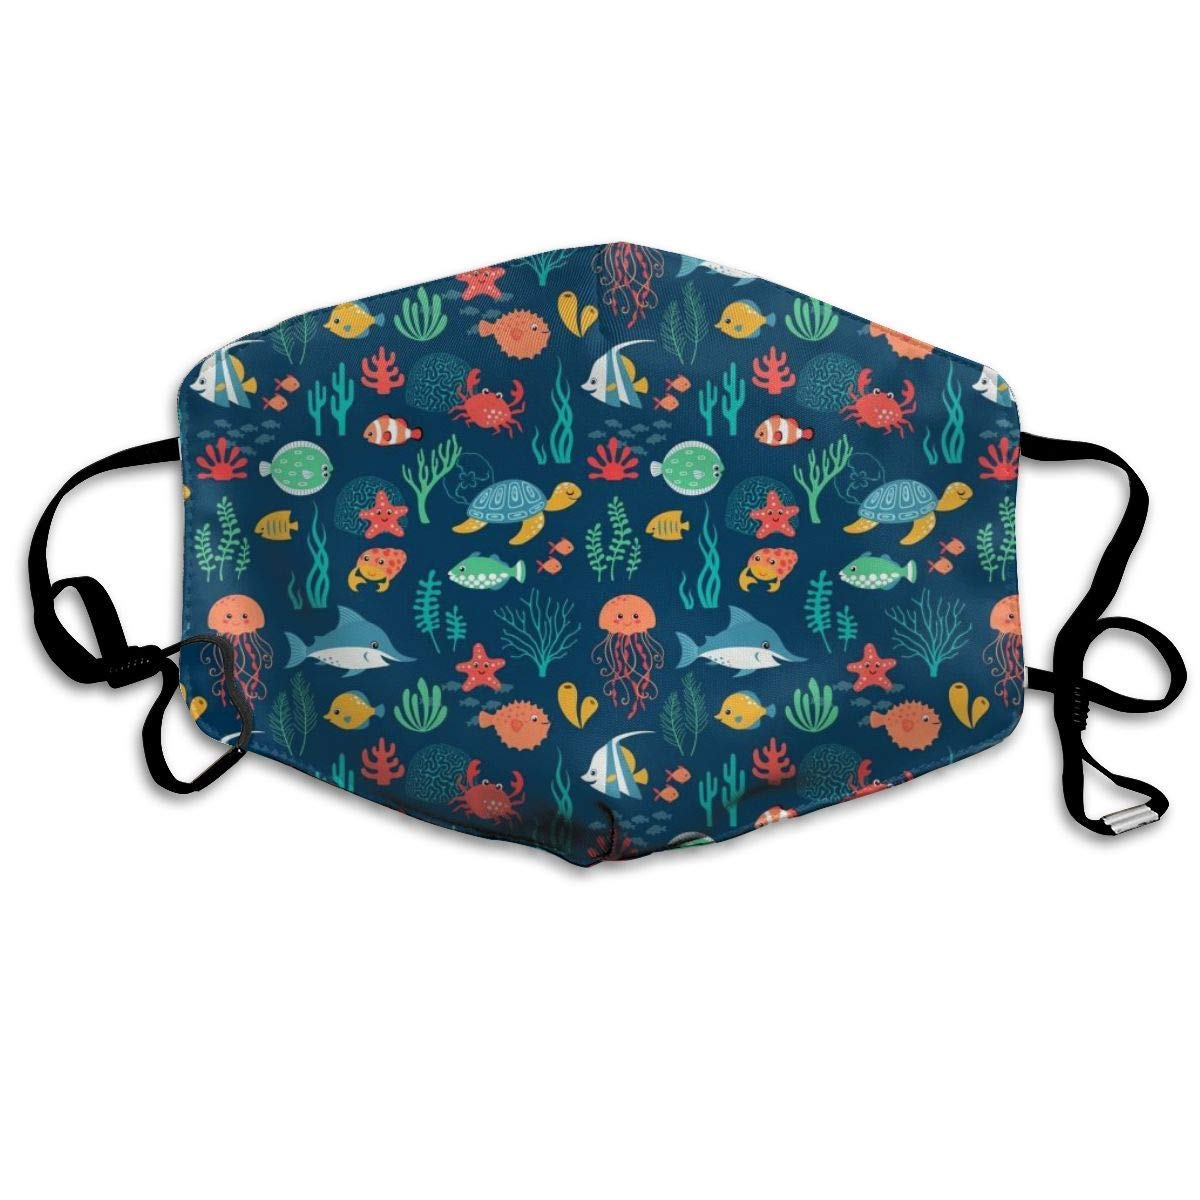 Mouth Mask for Daily Dress Up, Underwater Fish Turtle Anti-dust Mouth-Muffle, Washable Reusable Holiday Half Face Masks for Mens